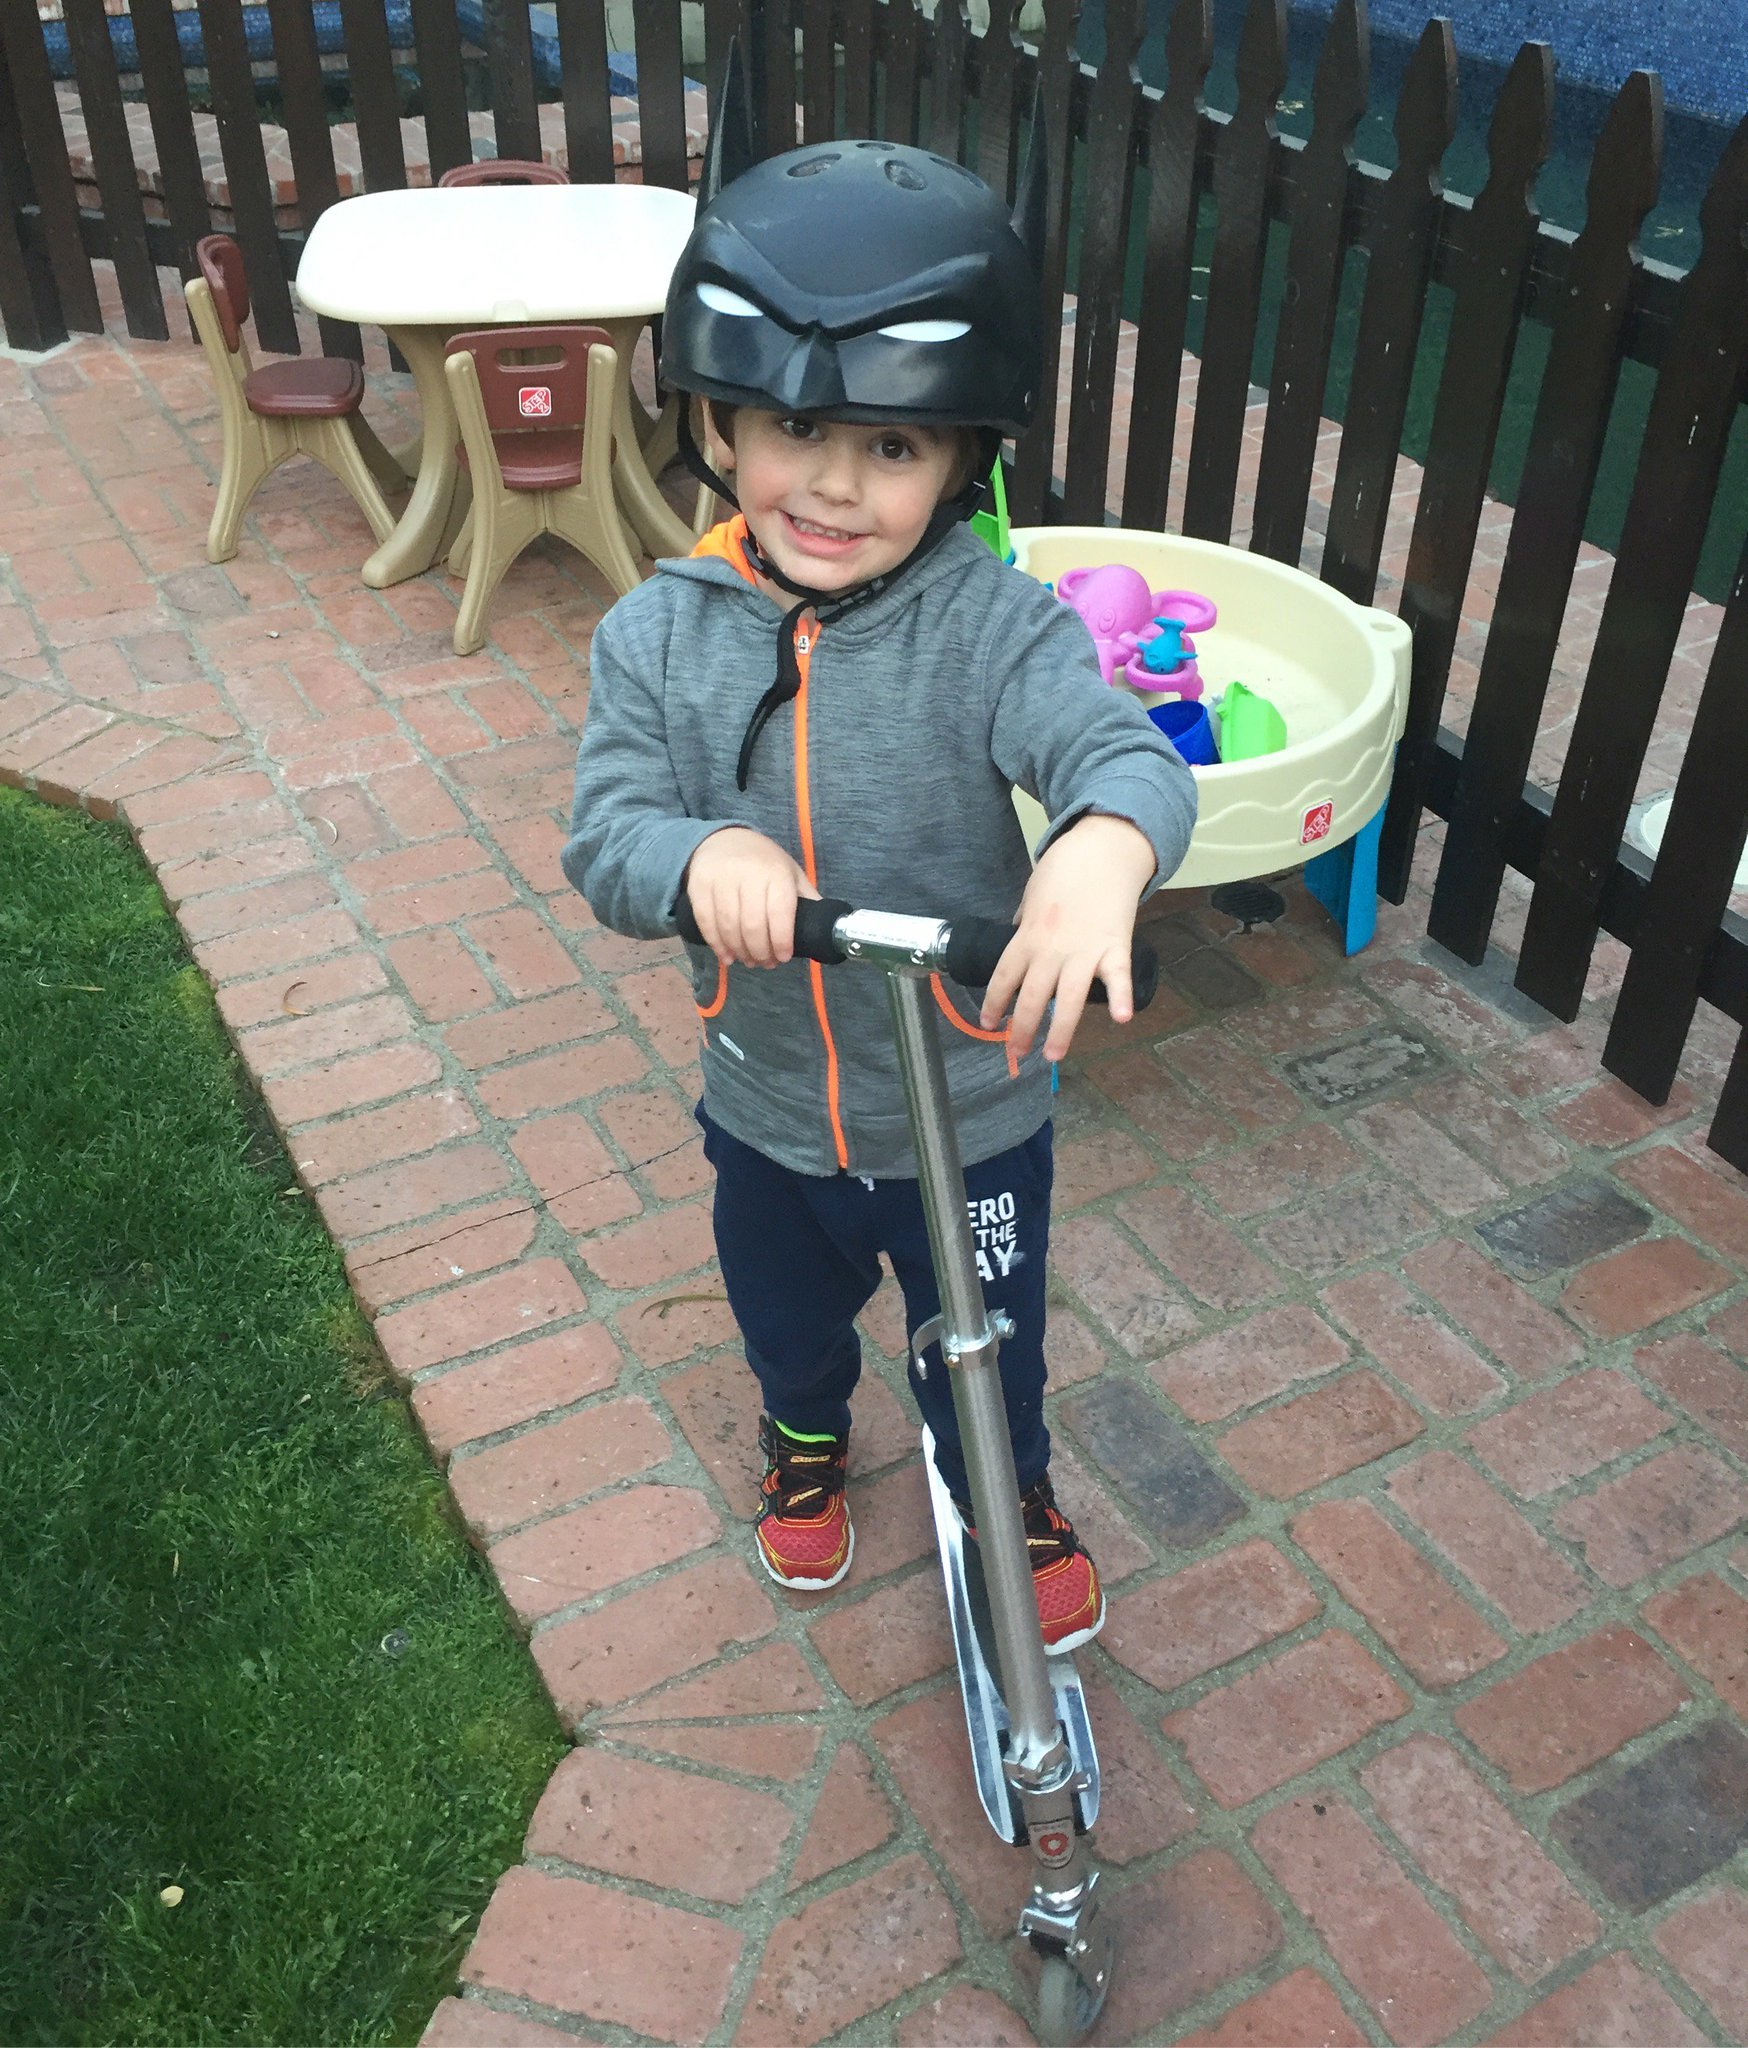 RT @ThePerezHilton: Coolest helmet on the block!! https://t.co/n2KbOXwTNp #JRhilton https://t.co/gOzXResuT7